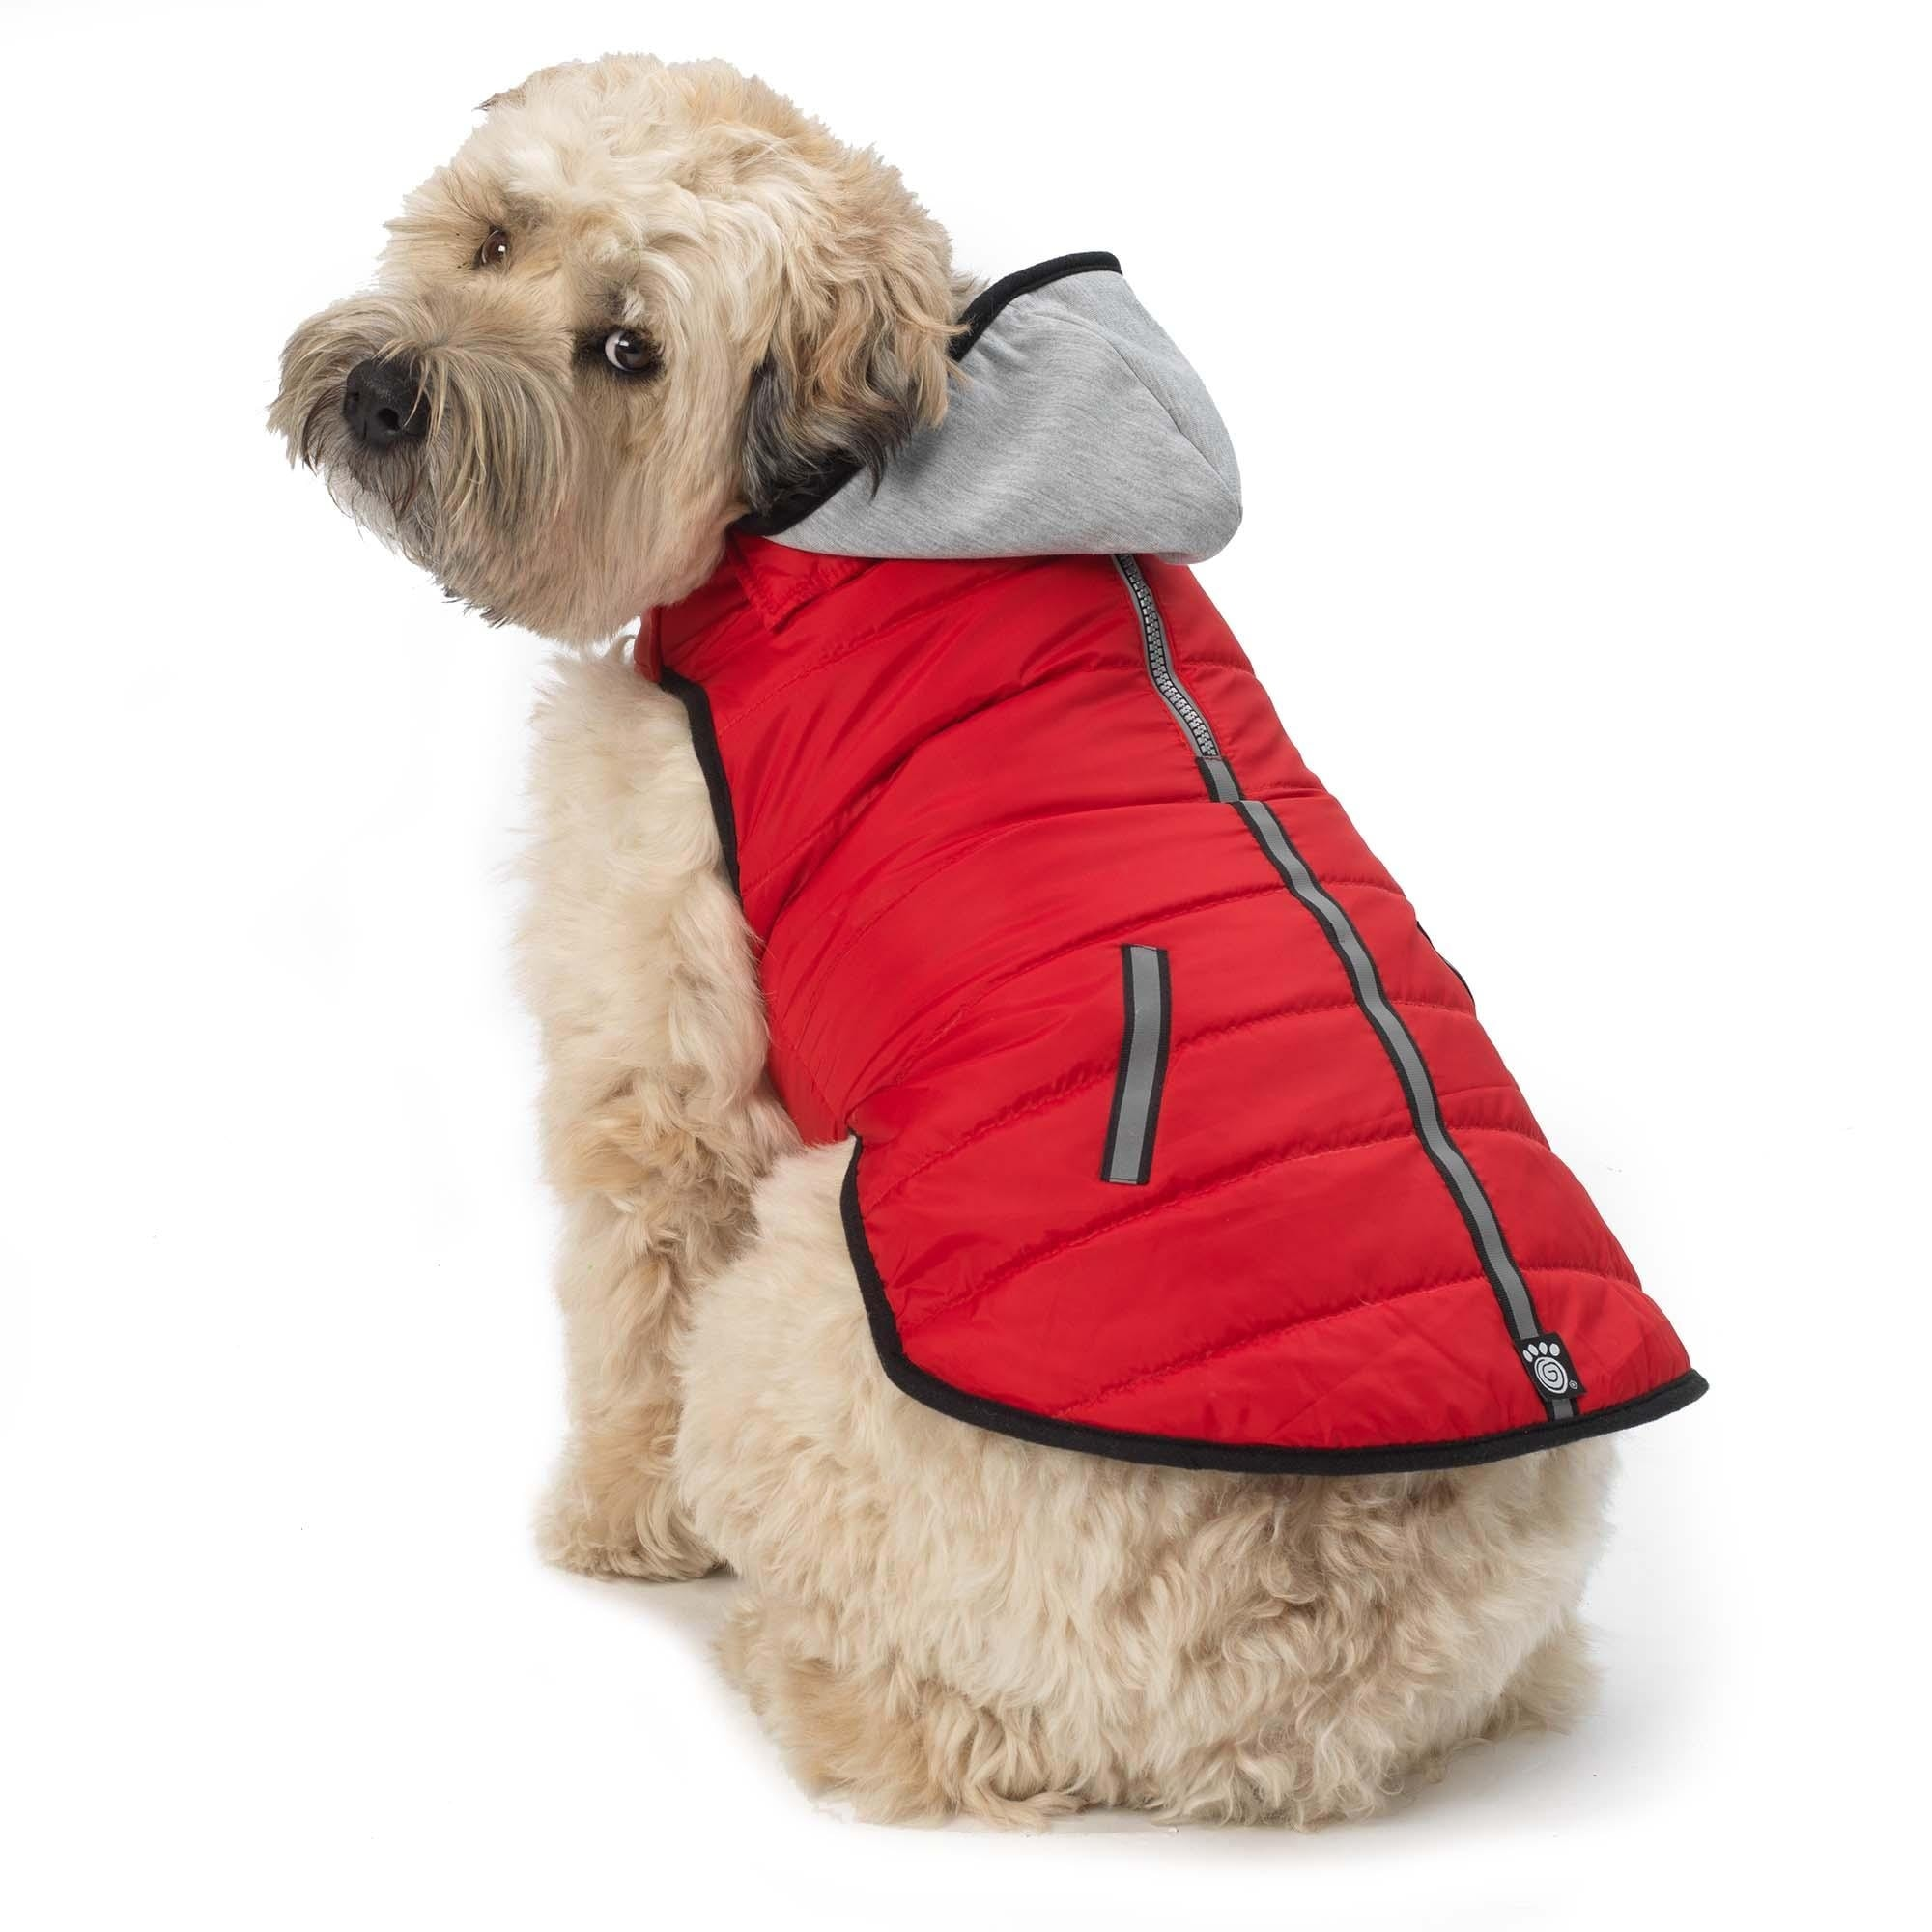 Stowe Puffer Dog Coat - Red (Red - X-Large)